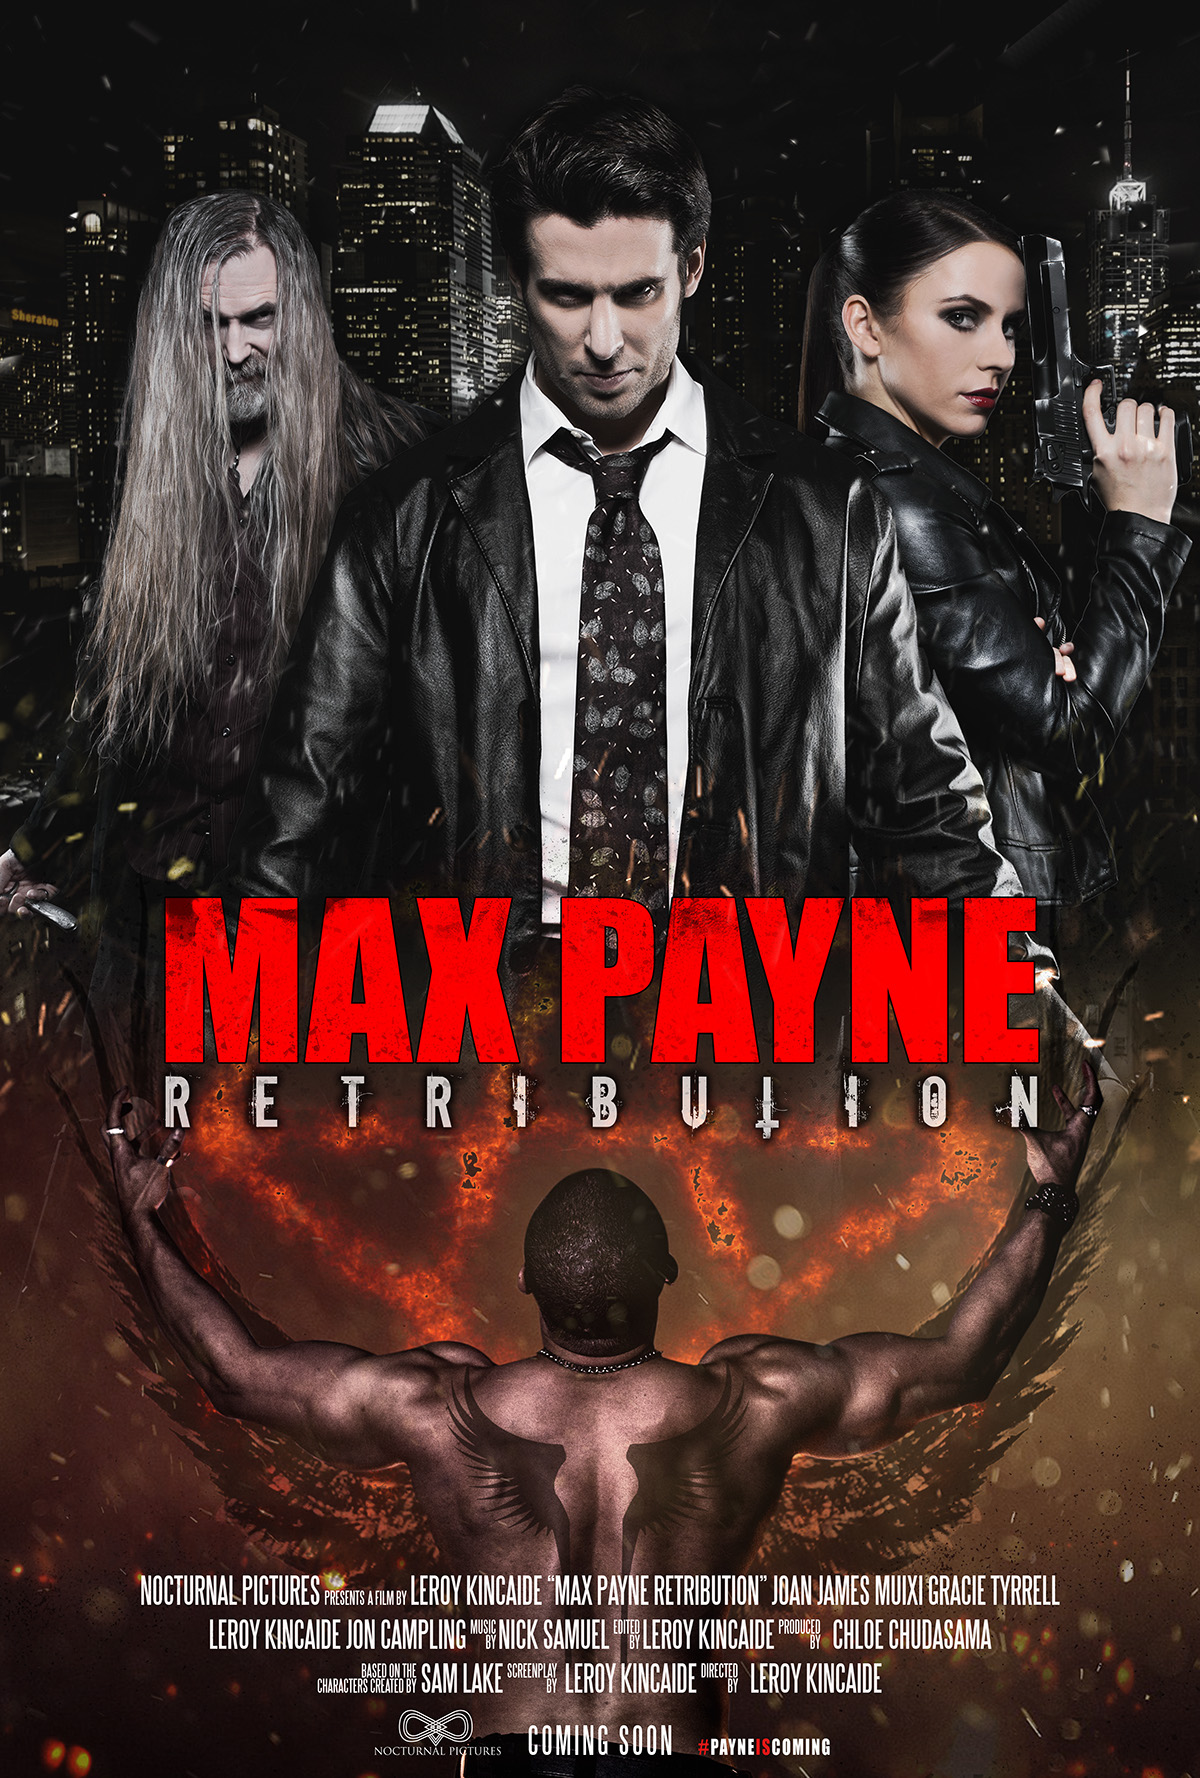 max payne retribution official movie poster on behance